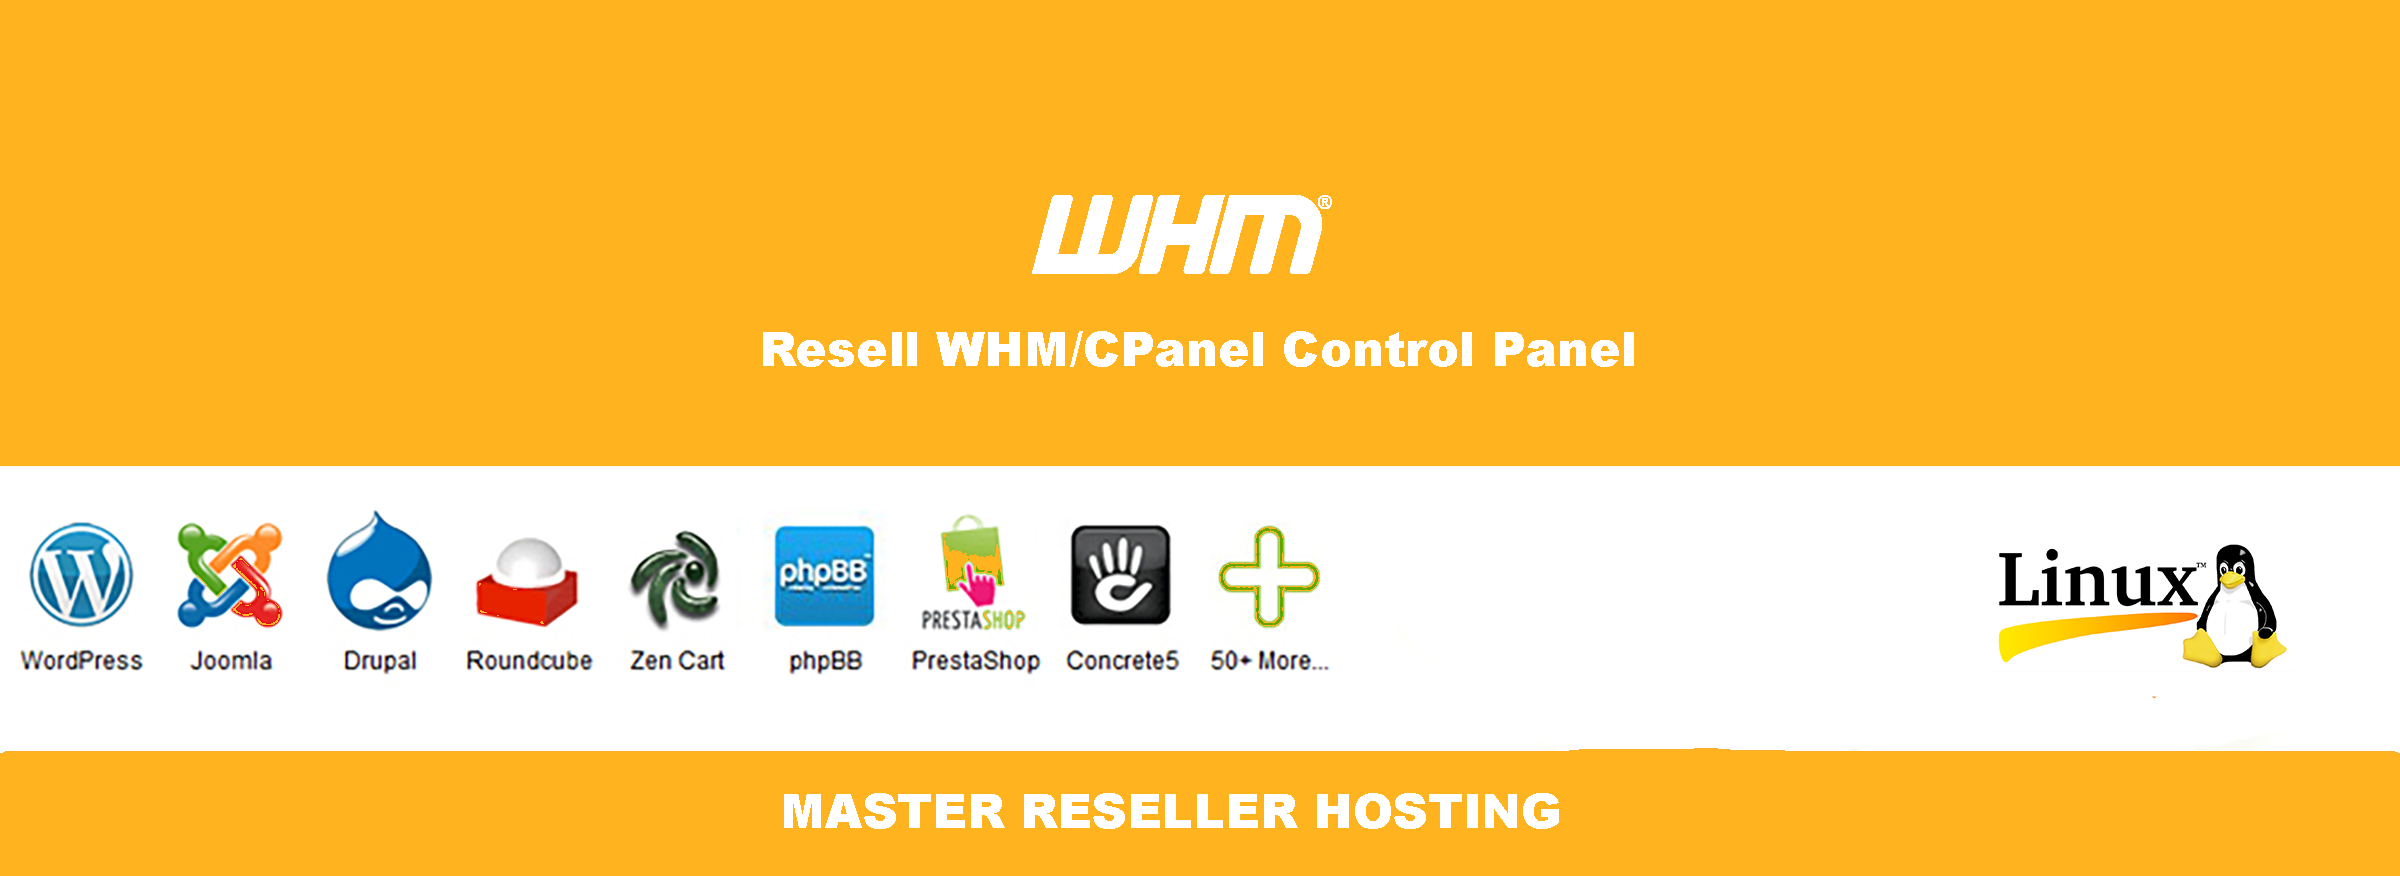 Master Reseller Hosting in india